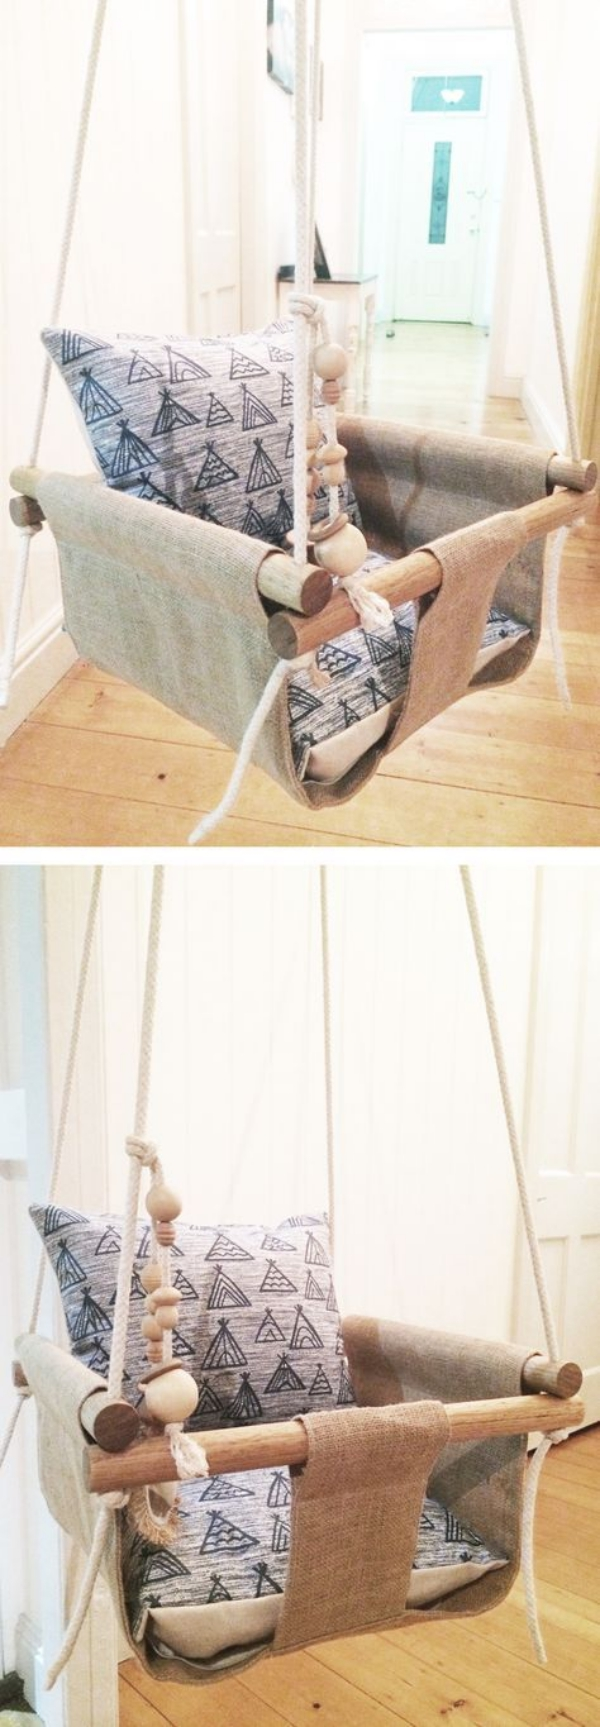 30 homemade diy swing ideas indoor outdoor for Easy diy gifts for boys